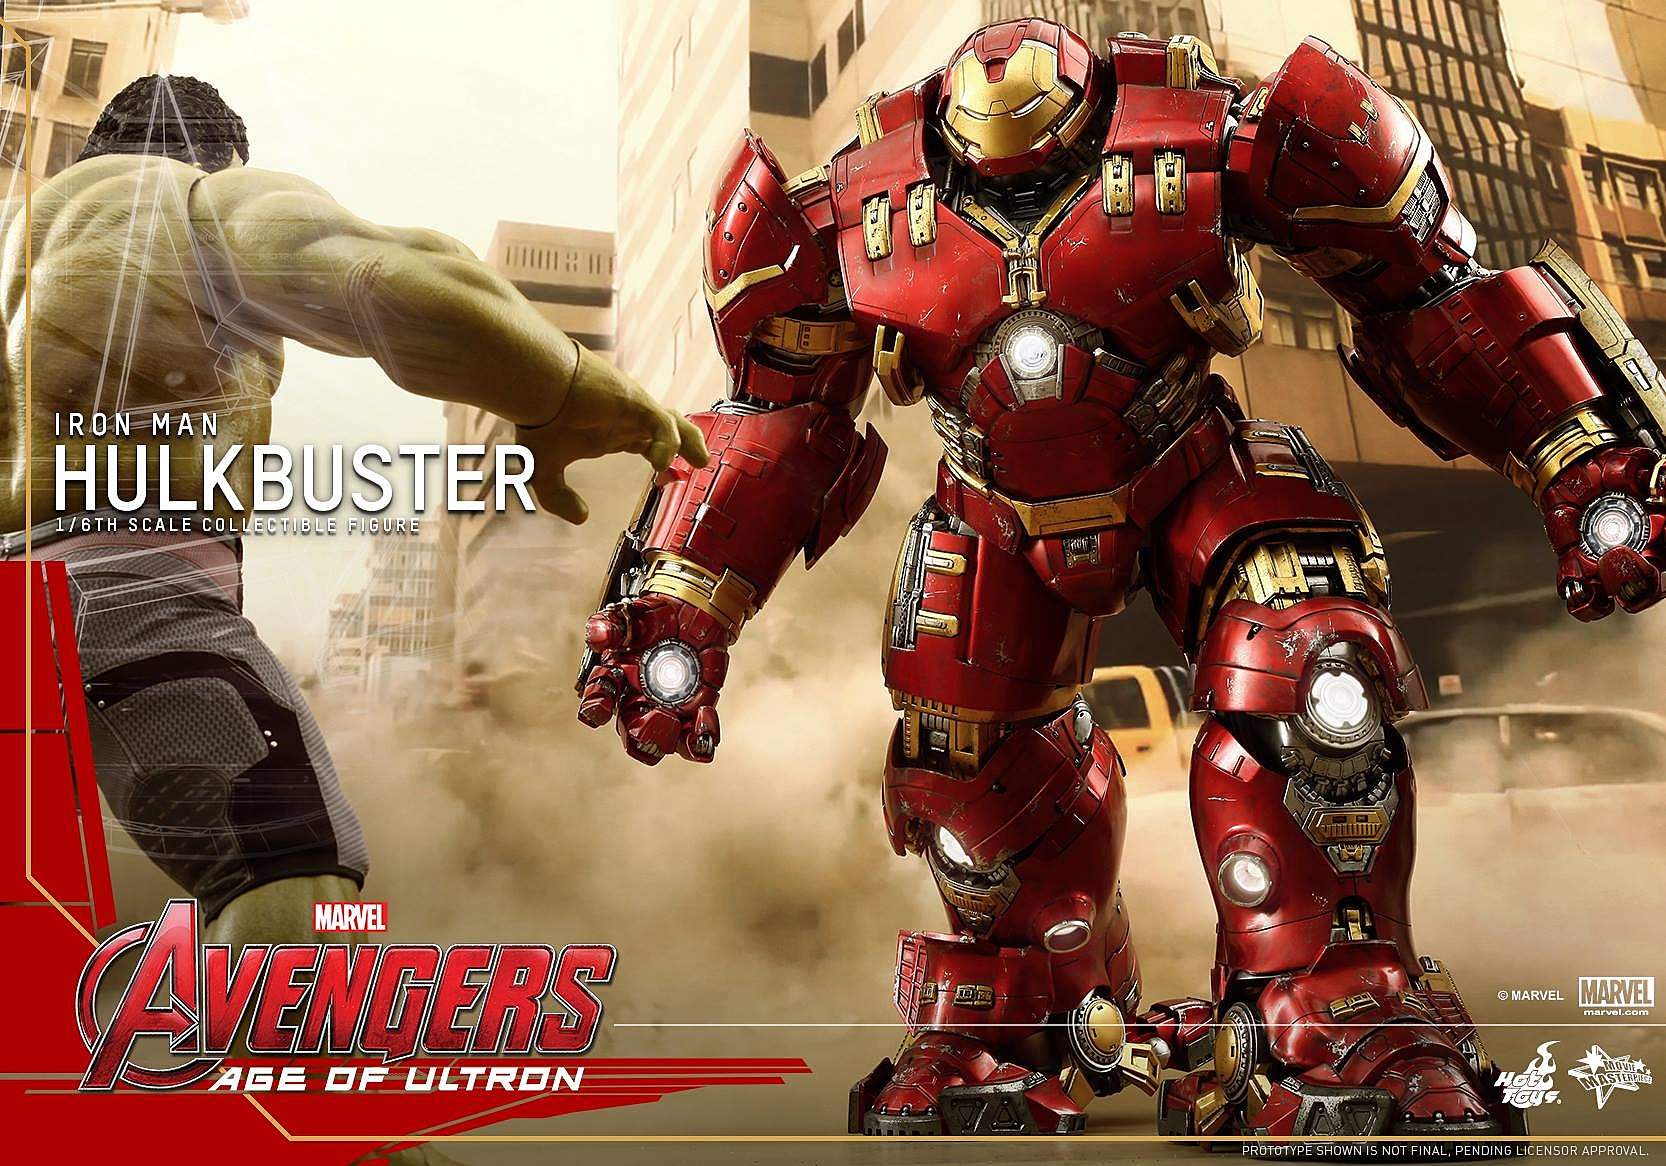 The Avengers 2 Hulkbuster Toy Is A Must Have For Marvel Fans